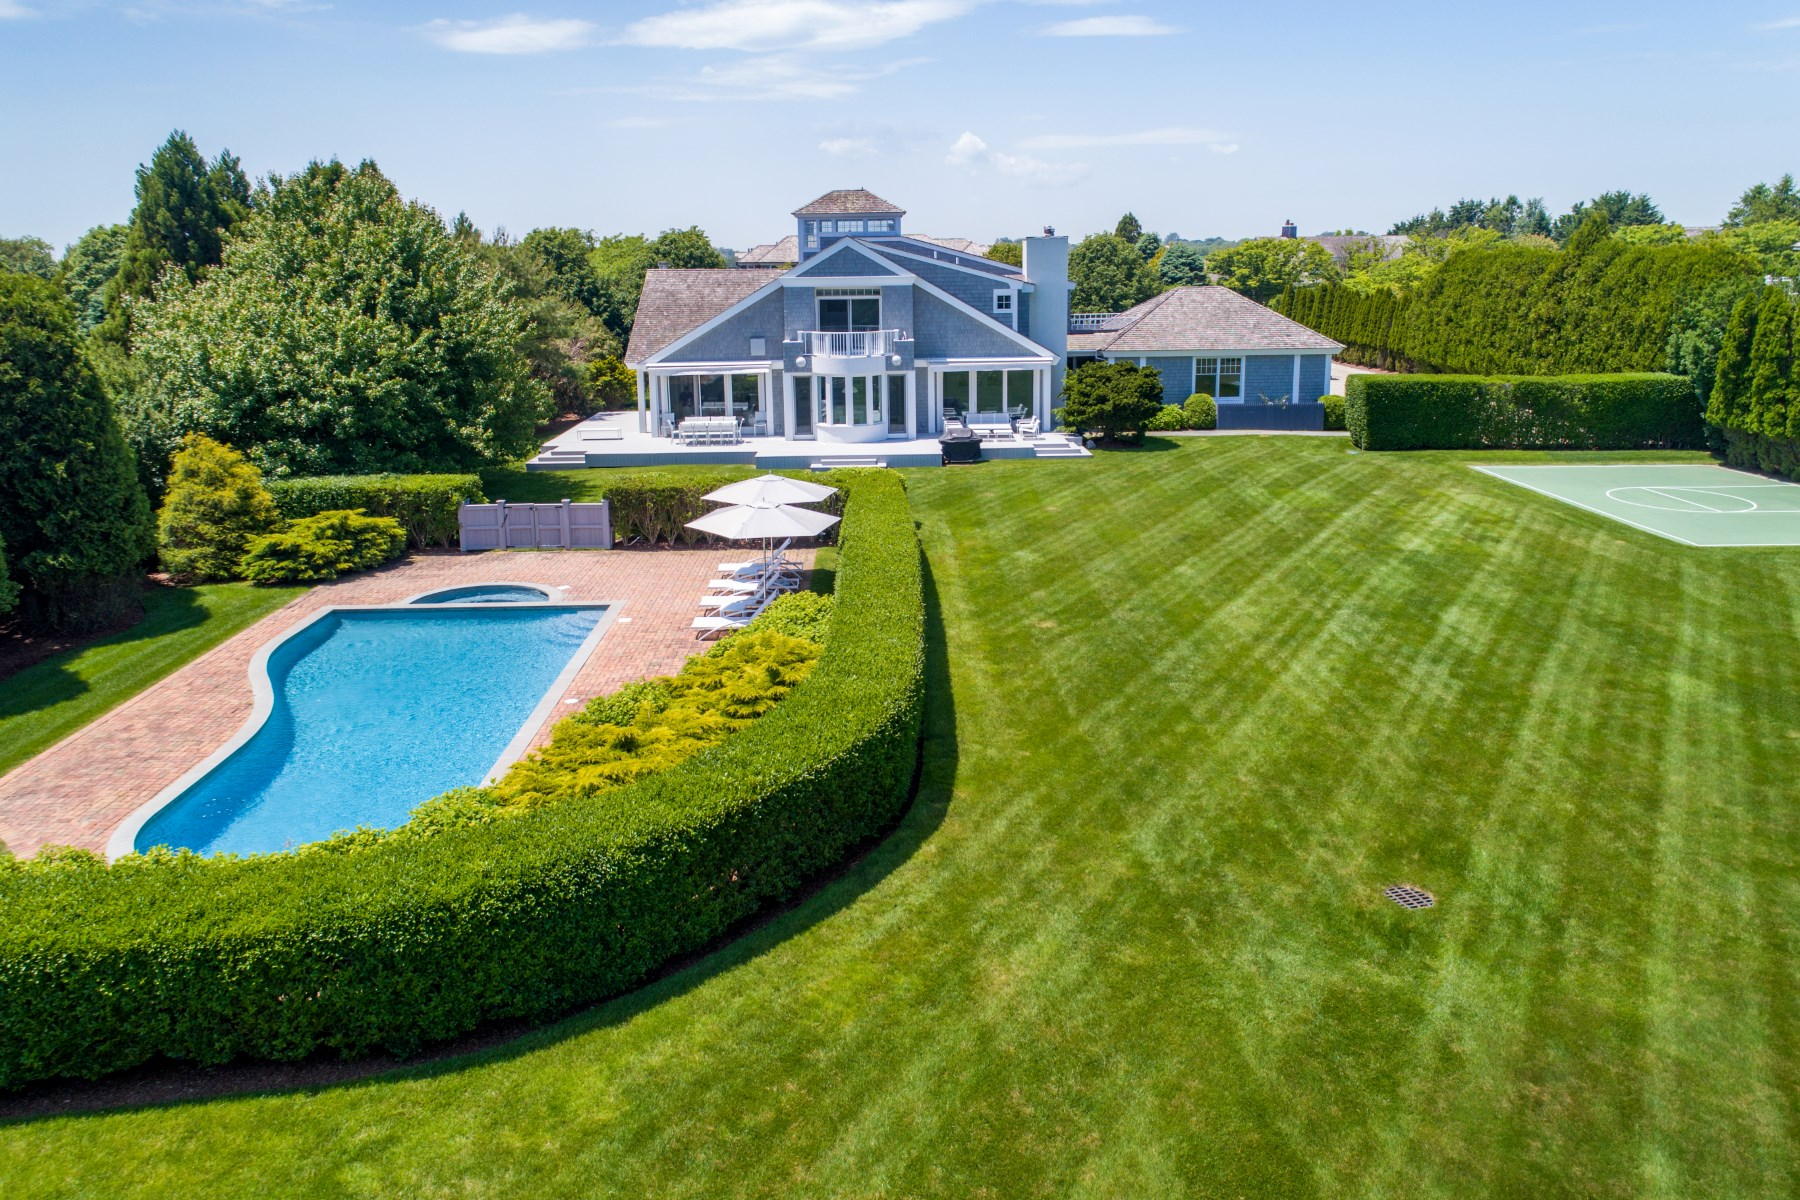 Single Family Home for Sale at Immaculate Sagaponack South Beach House 182 Ericas Lane Sagaponack, New York 11962 United States